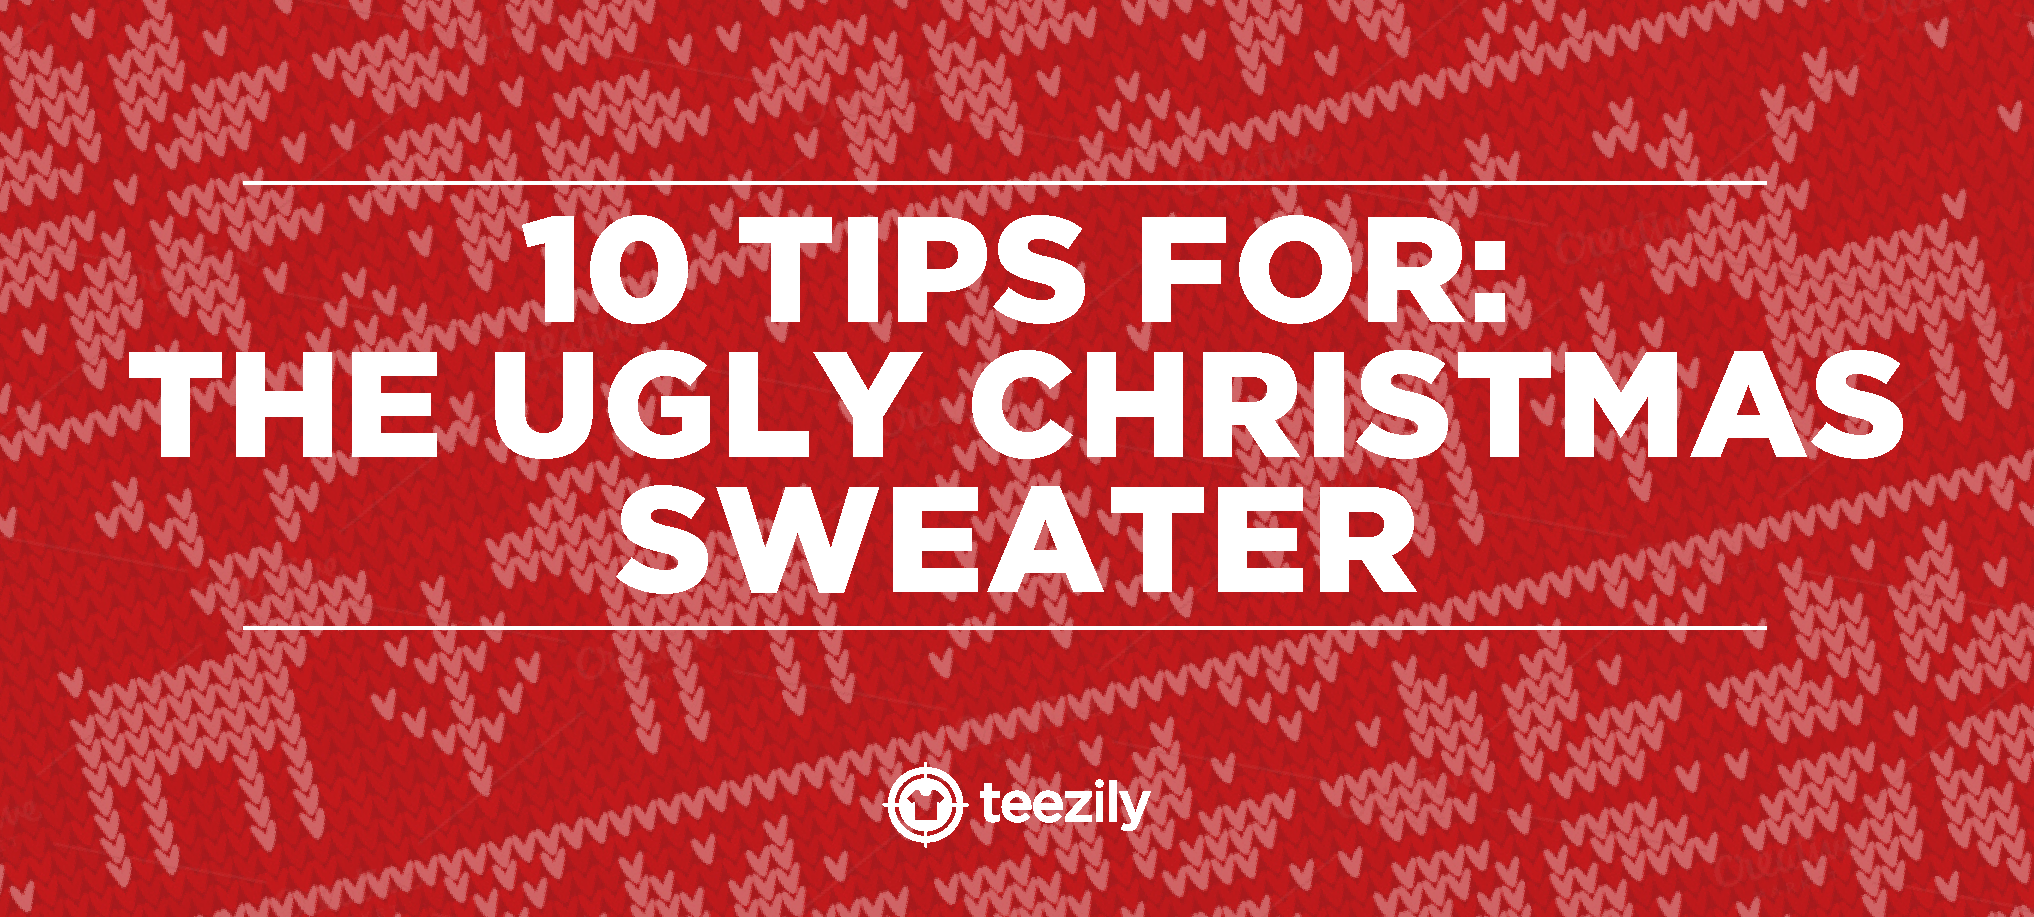 BANNER_UGLY CHRISTMAS SWEATER